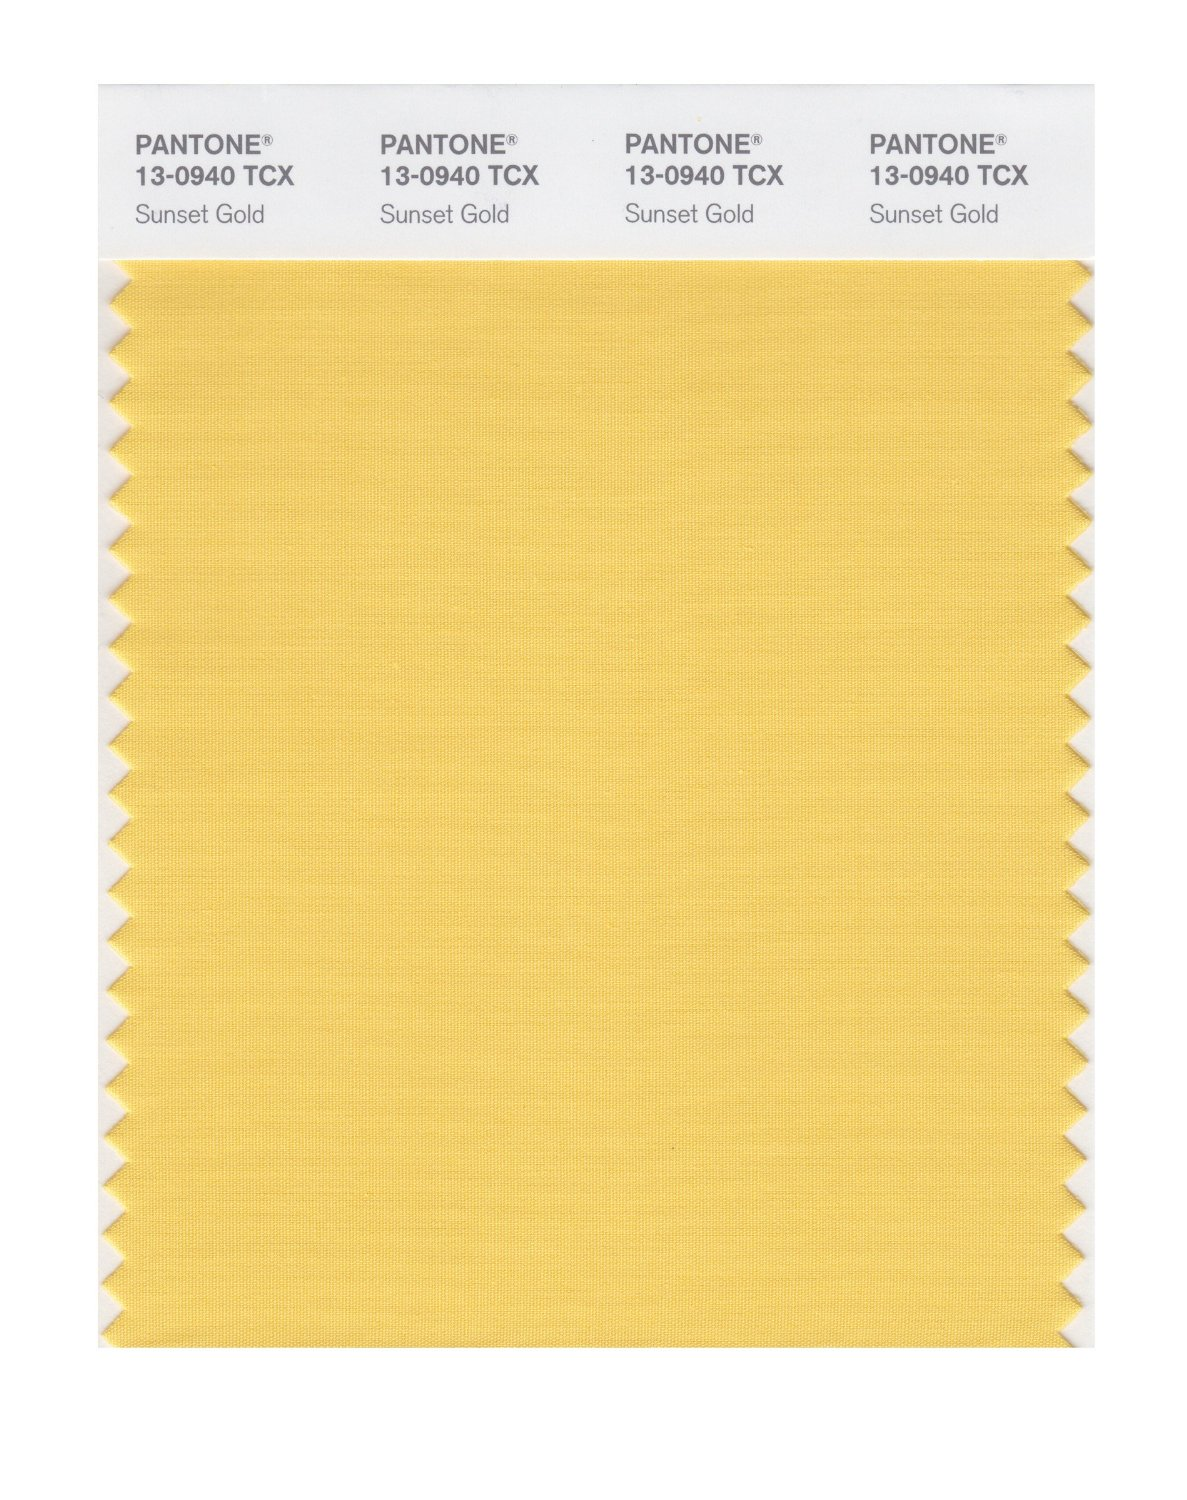 Pantone Smart Swatch 13-0940 Sunset Gold